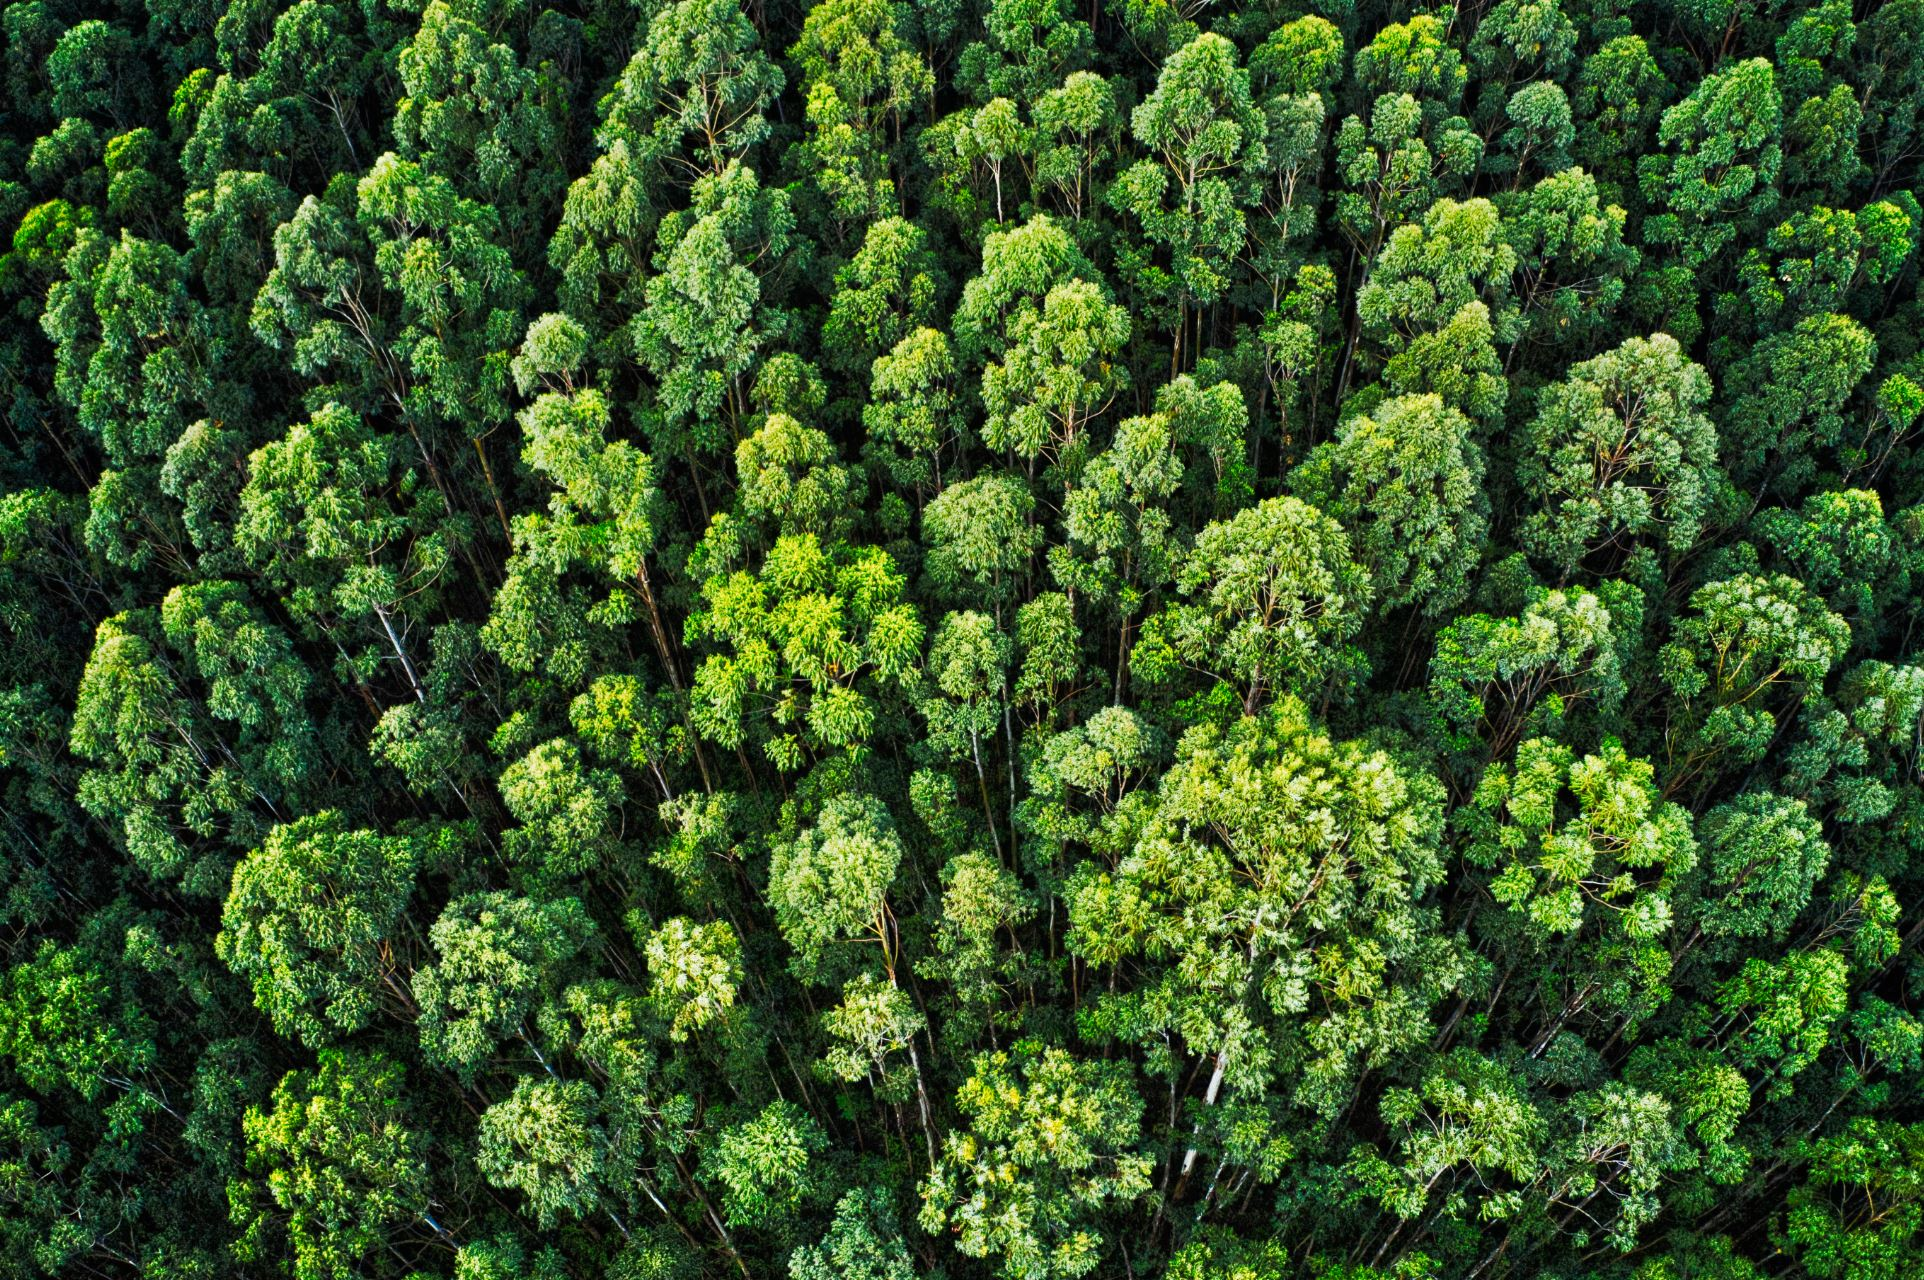 A dense forest. There might be more going on here than meets the eye - Image Credit:  Jakub Gorajek via Unsplash  -  HDR tune by Universal-Sci